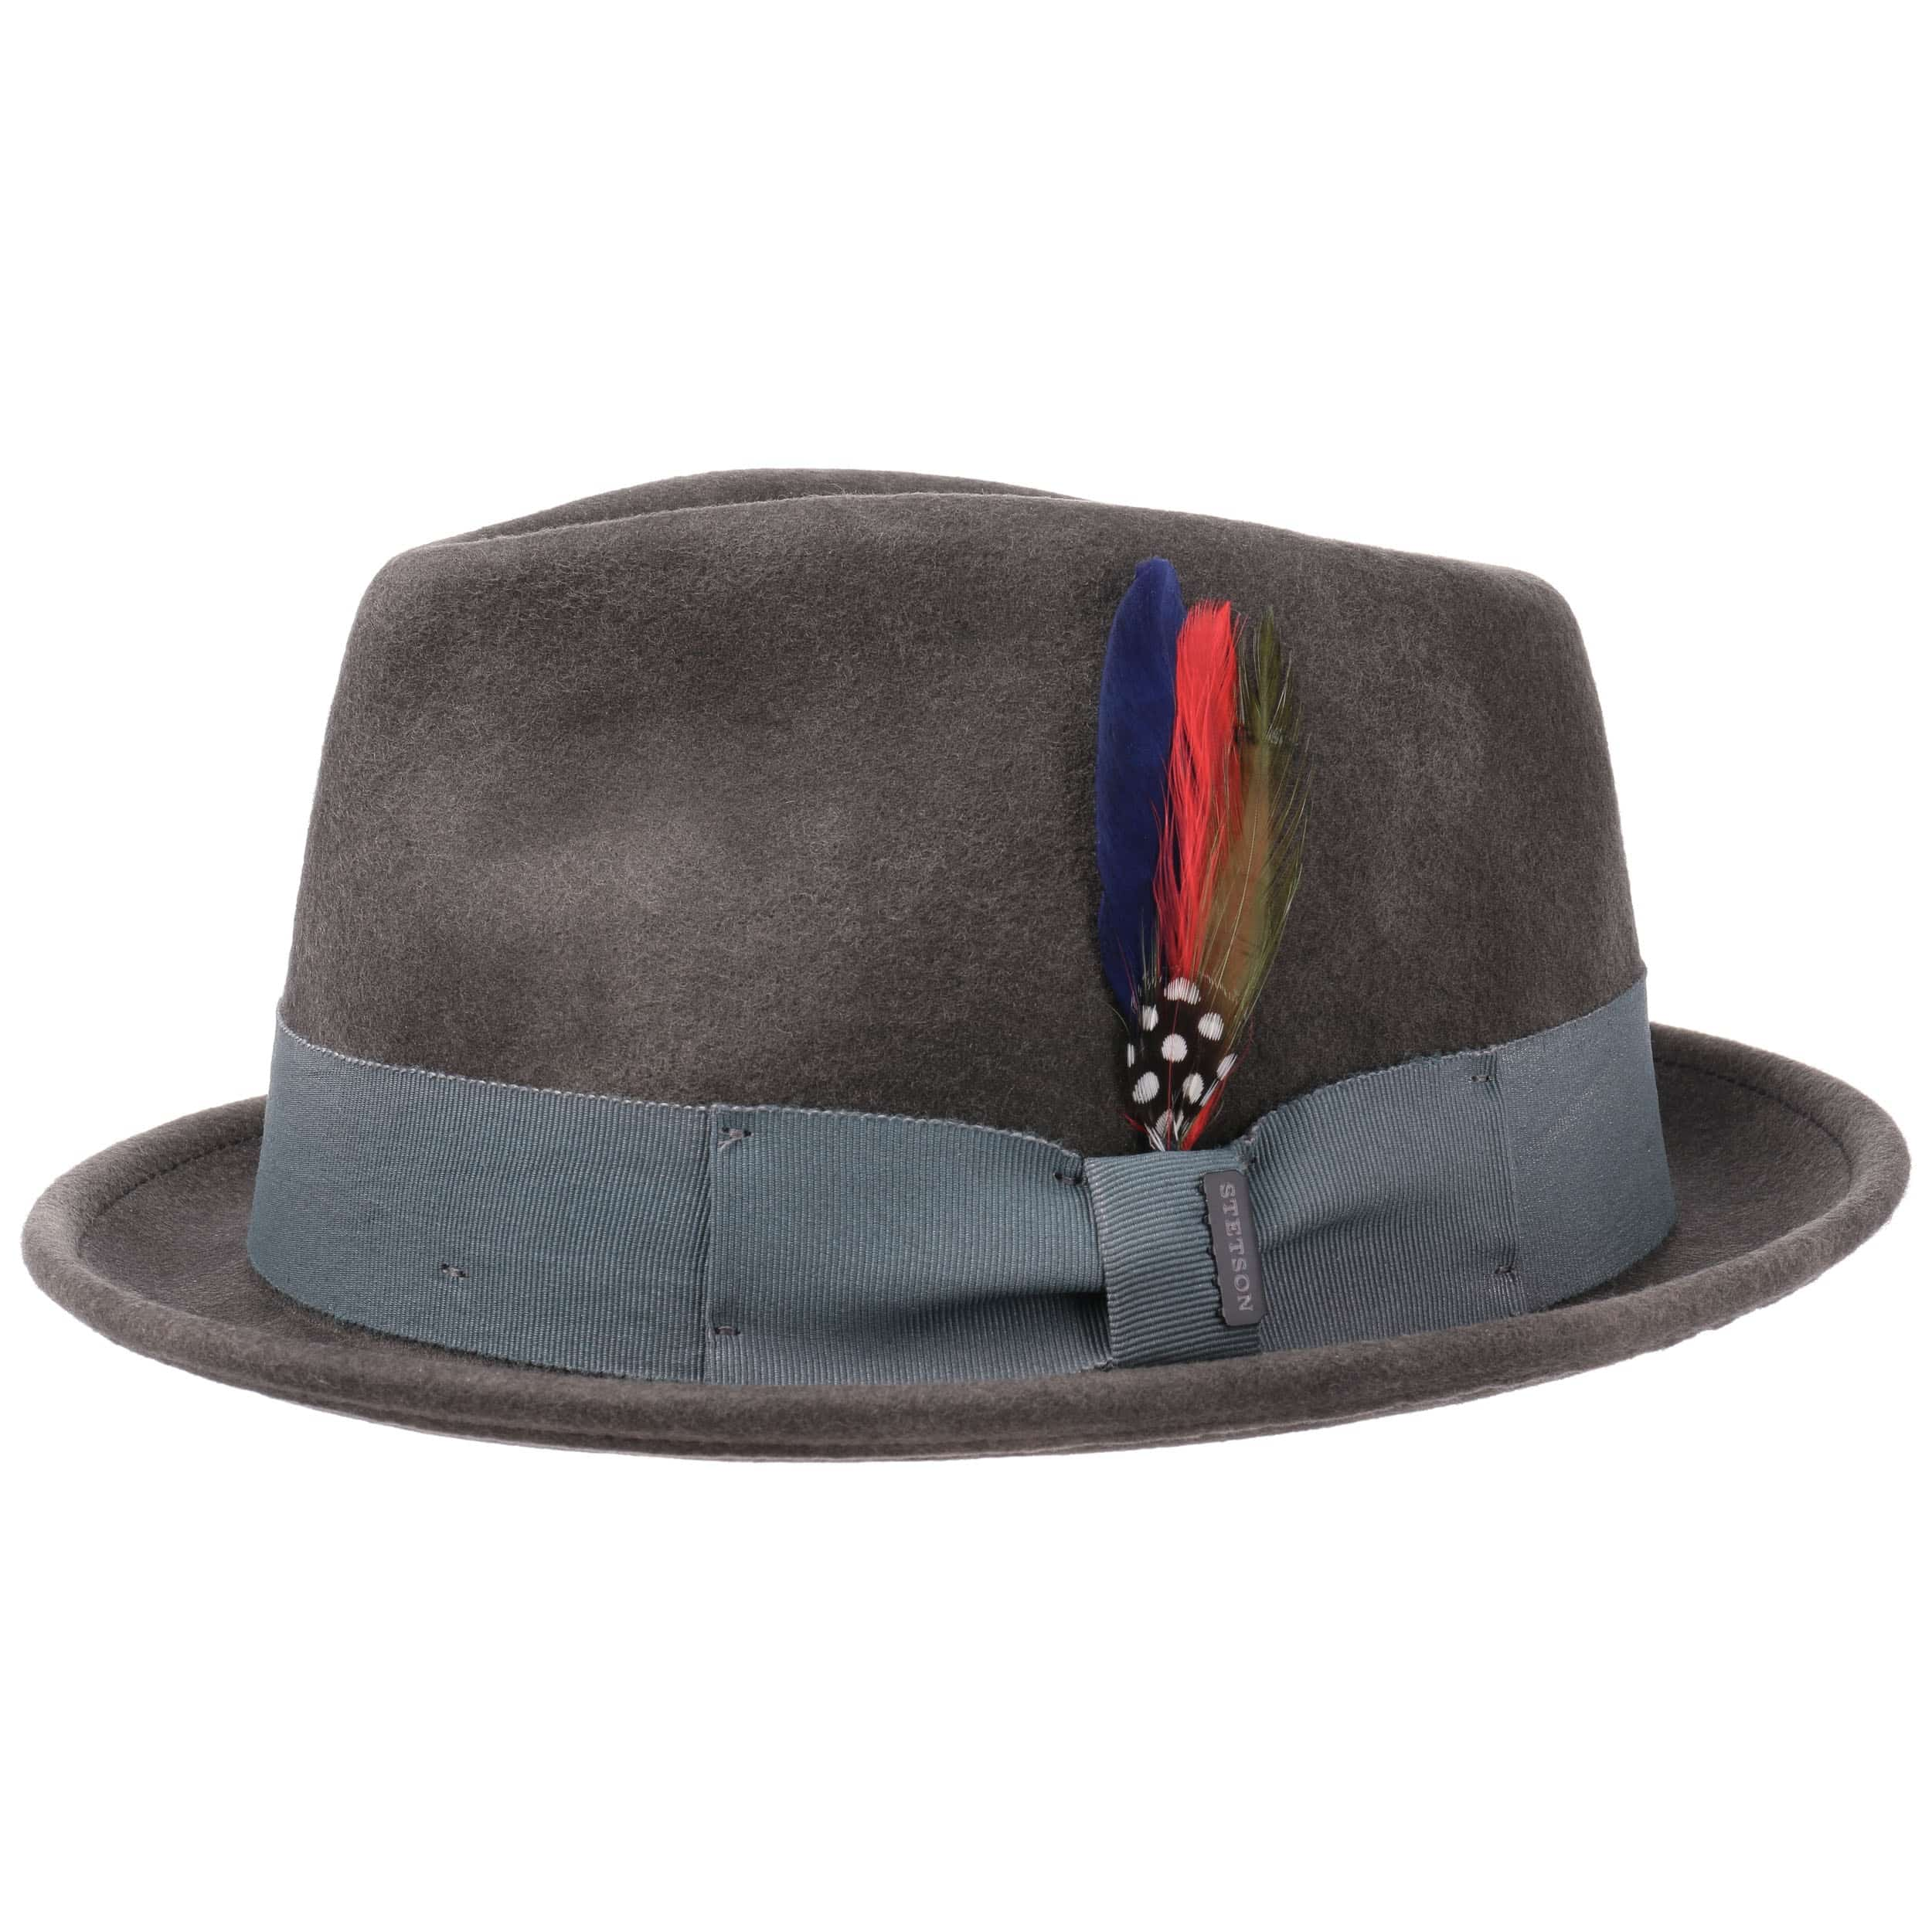 Washed Look Fedora Felt Hat. by Stetson e93deacbc3d